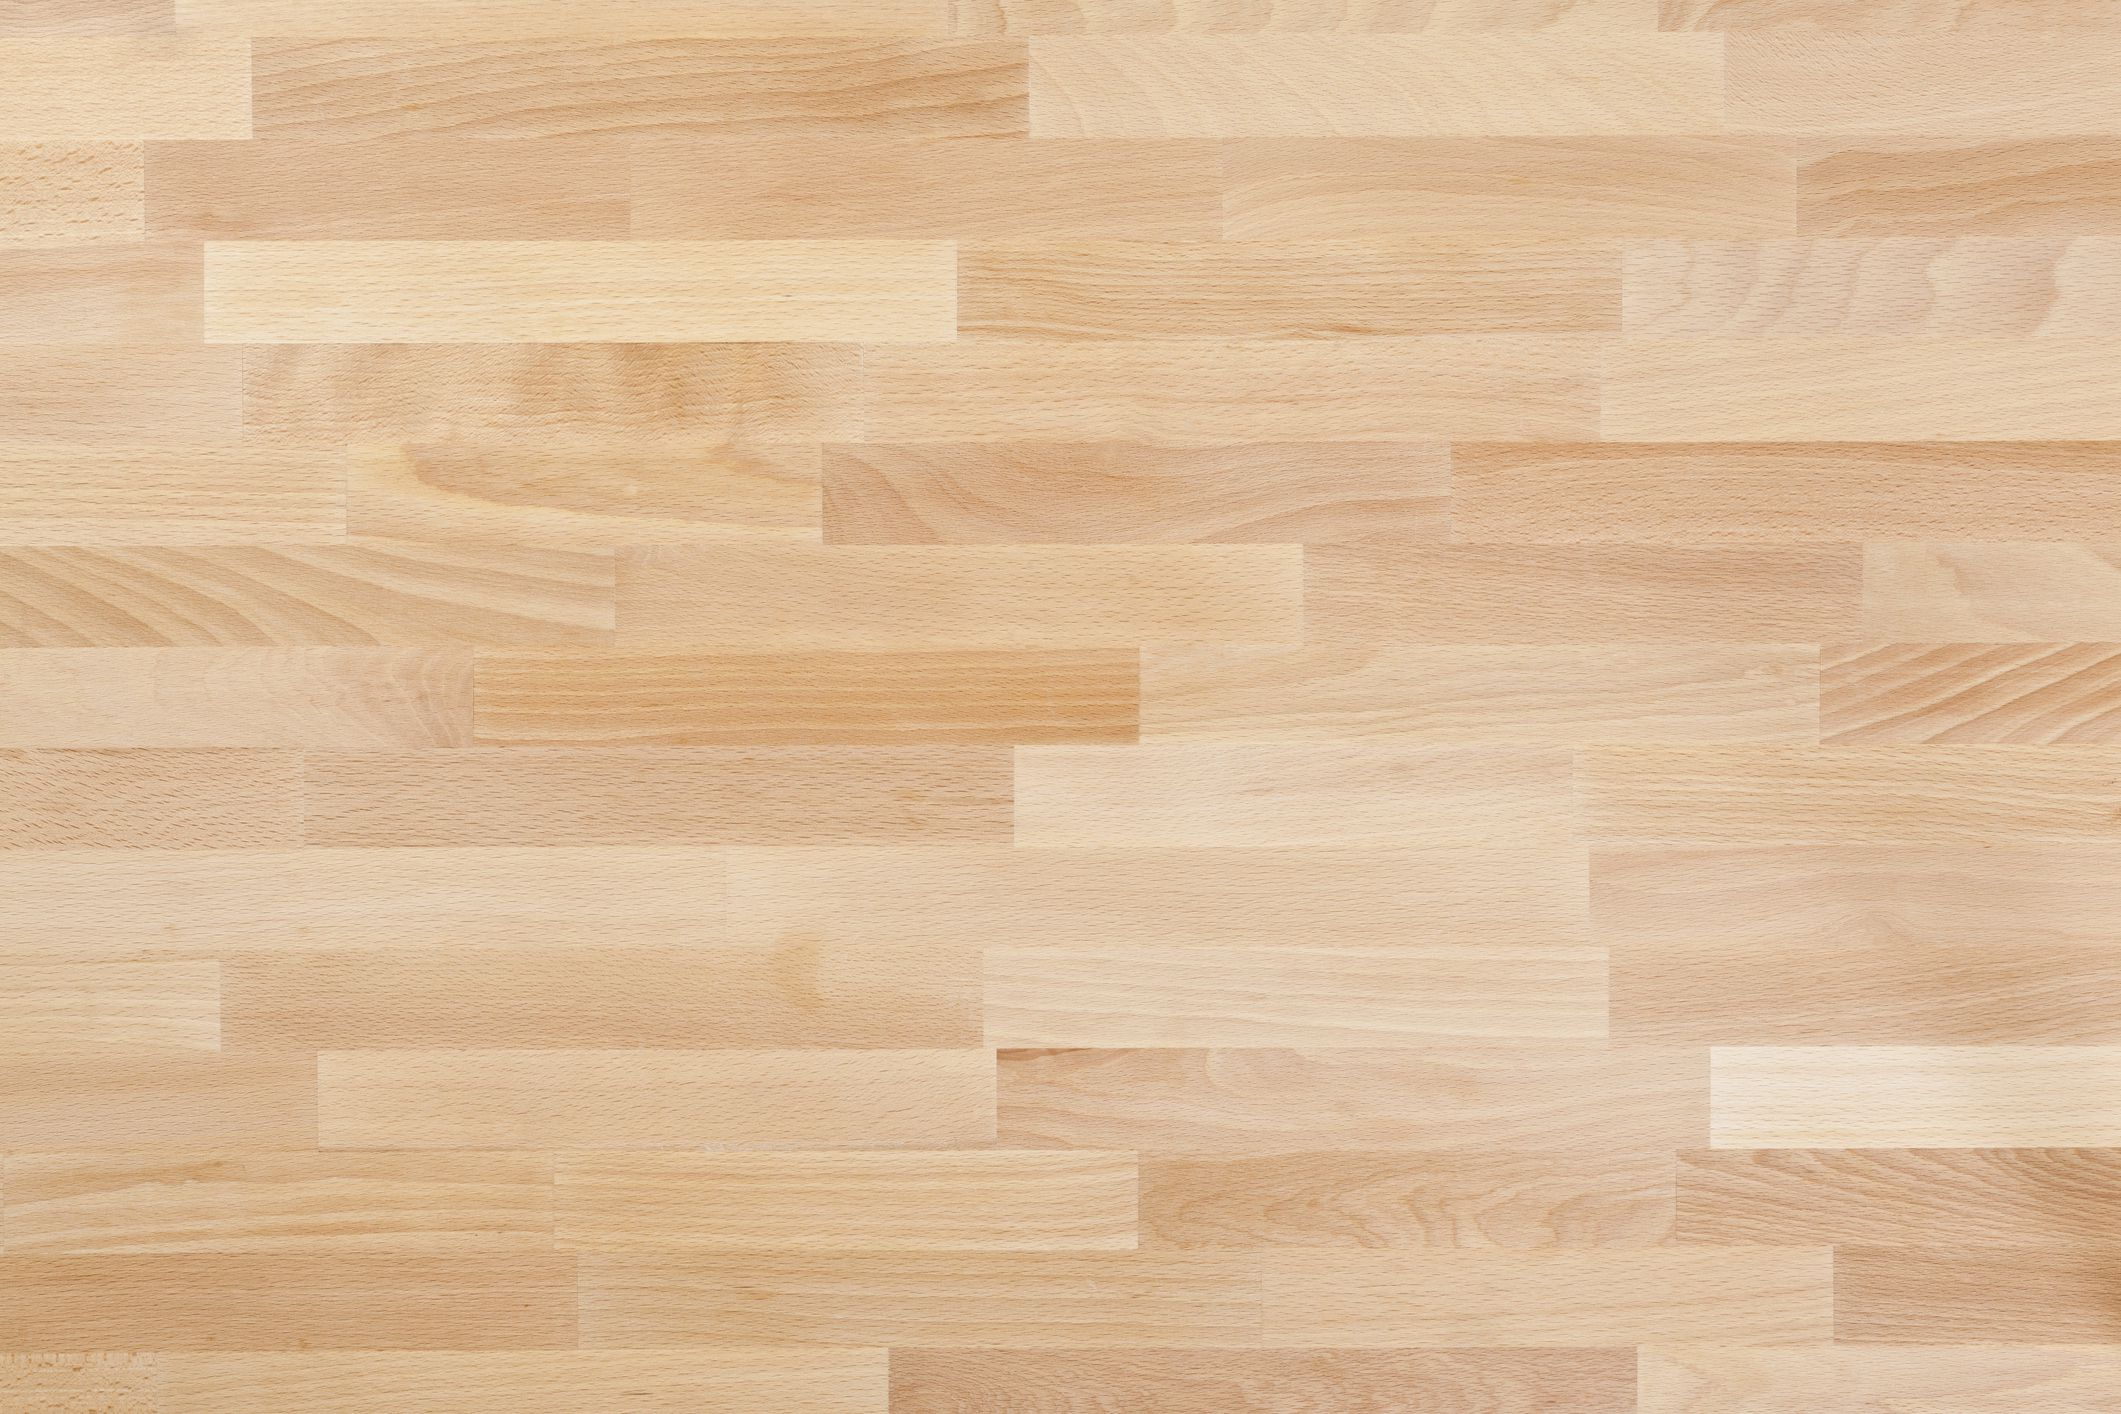 Top 5 bathroom flooring options does laminate flooring scratch easily dailygadgetfo Gallery